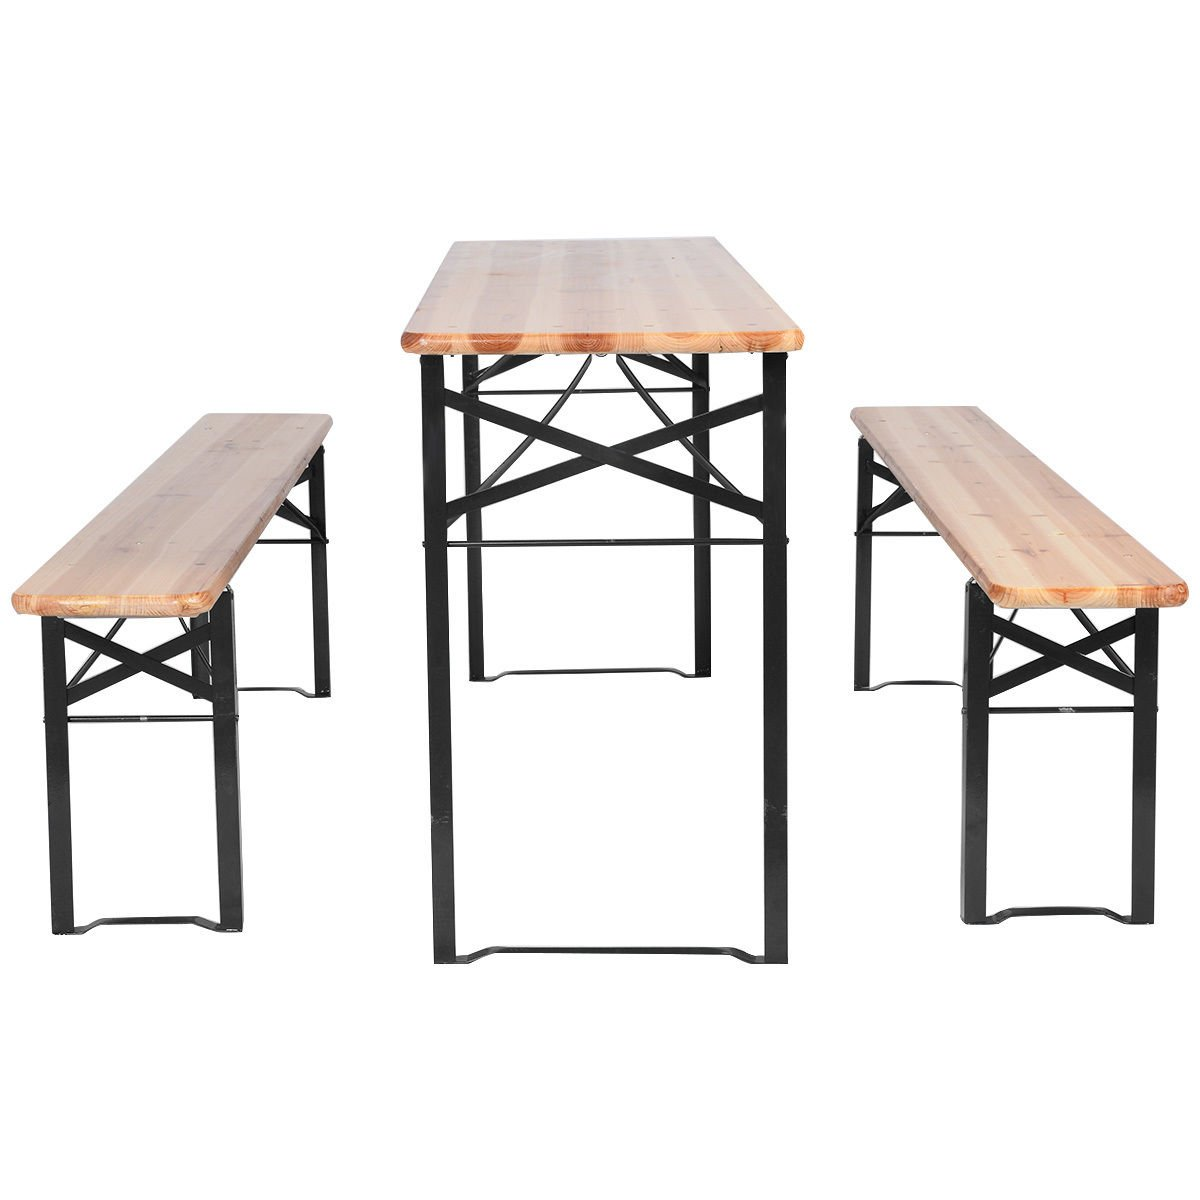 3 PCS Beer Table Bench Set Folding Wooden Top Picnic Table Patio Garden New for outdoor activities & garden use